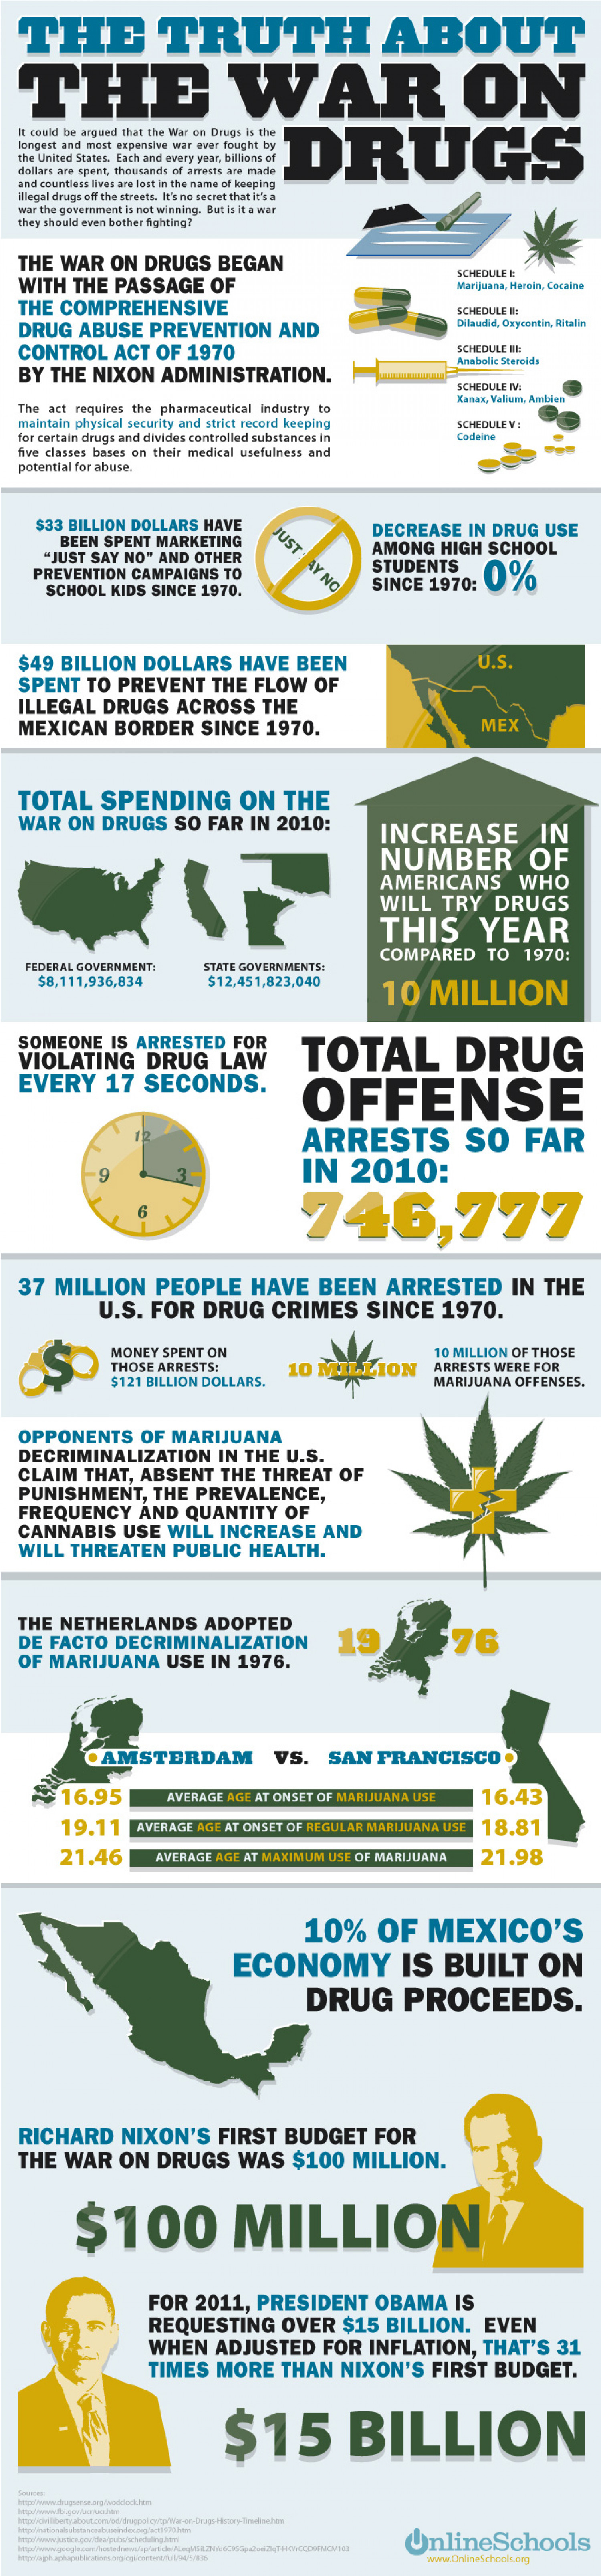 The Truth About the War on Drugs Infographic